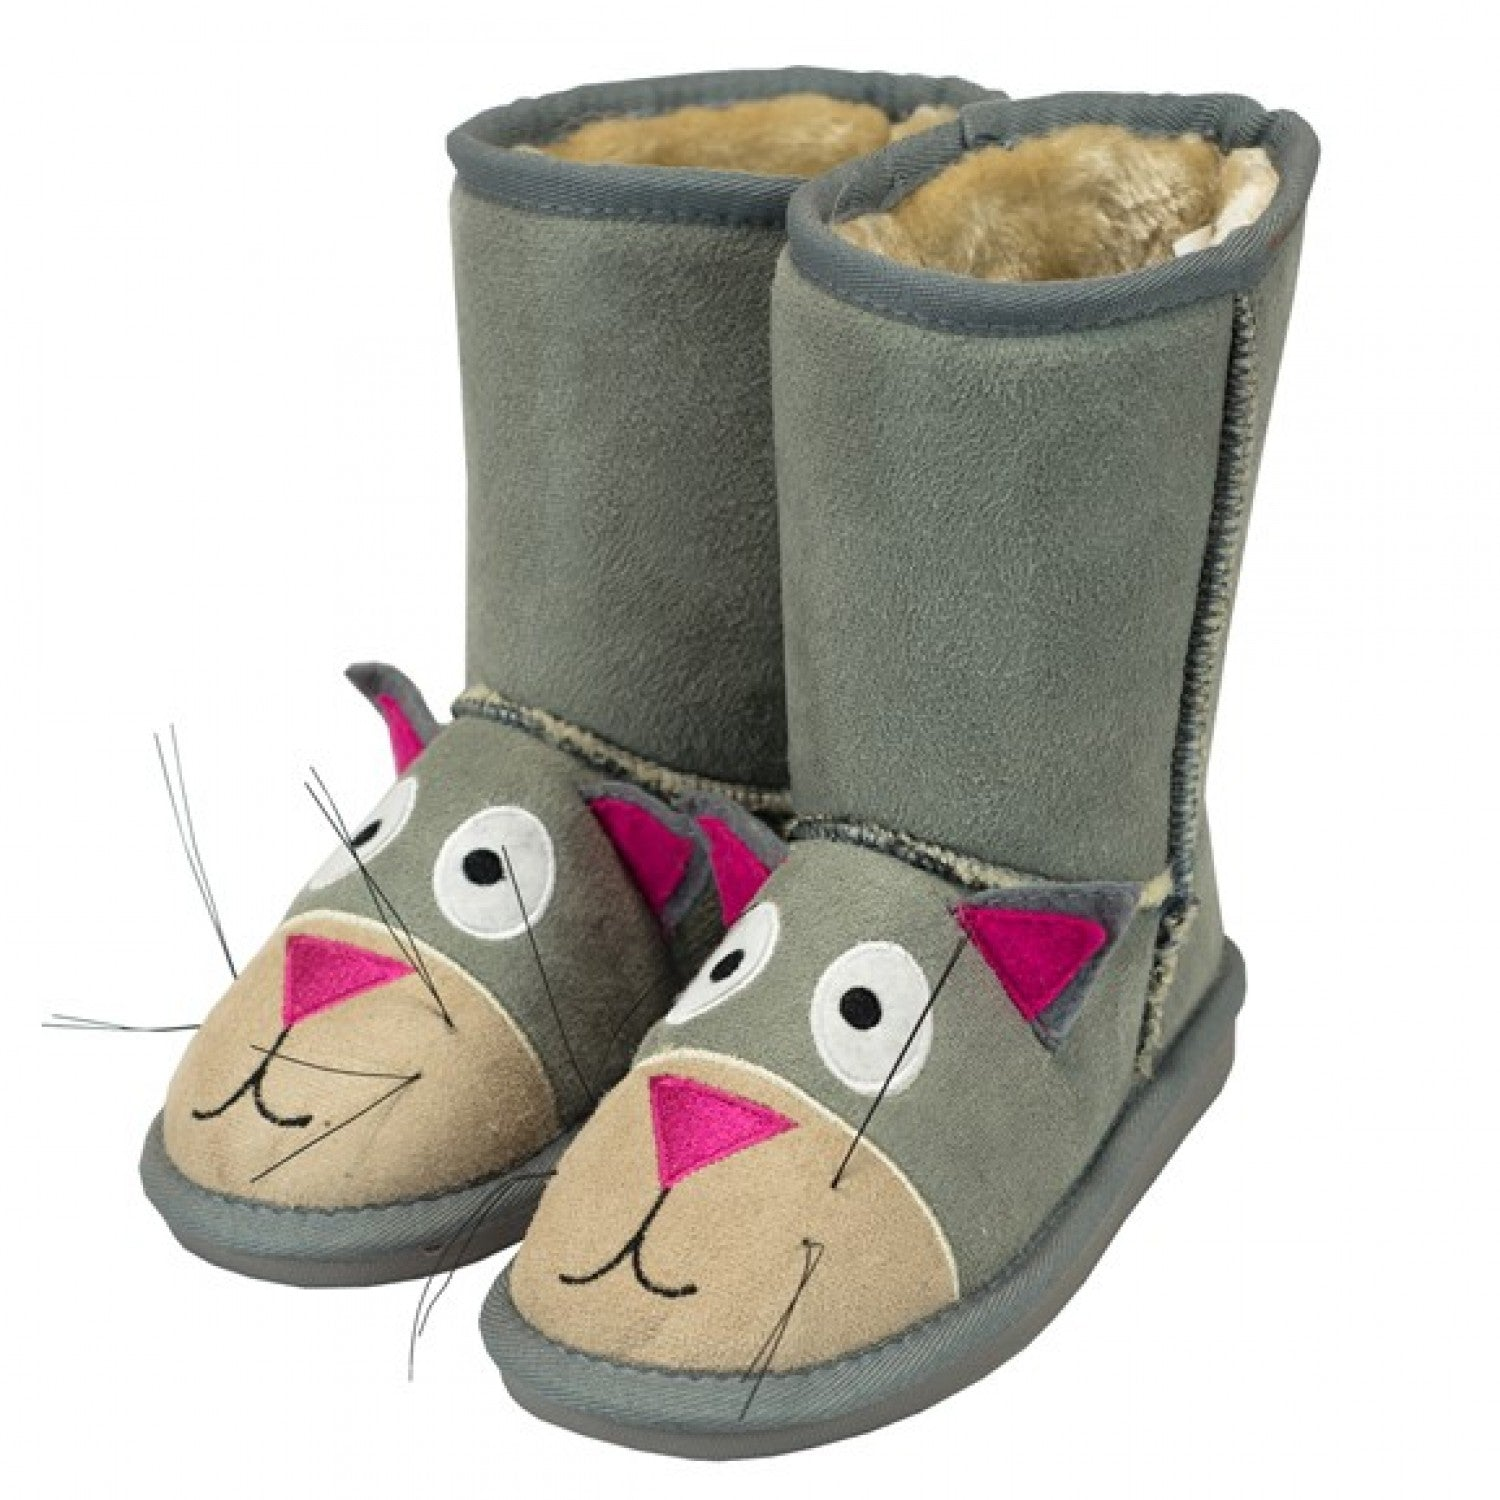 LAGO - CAT TOASTY TOES SLIPPERS